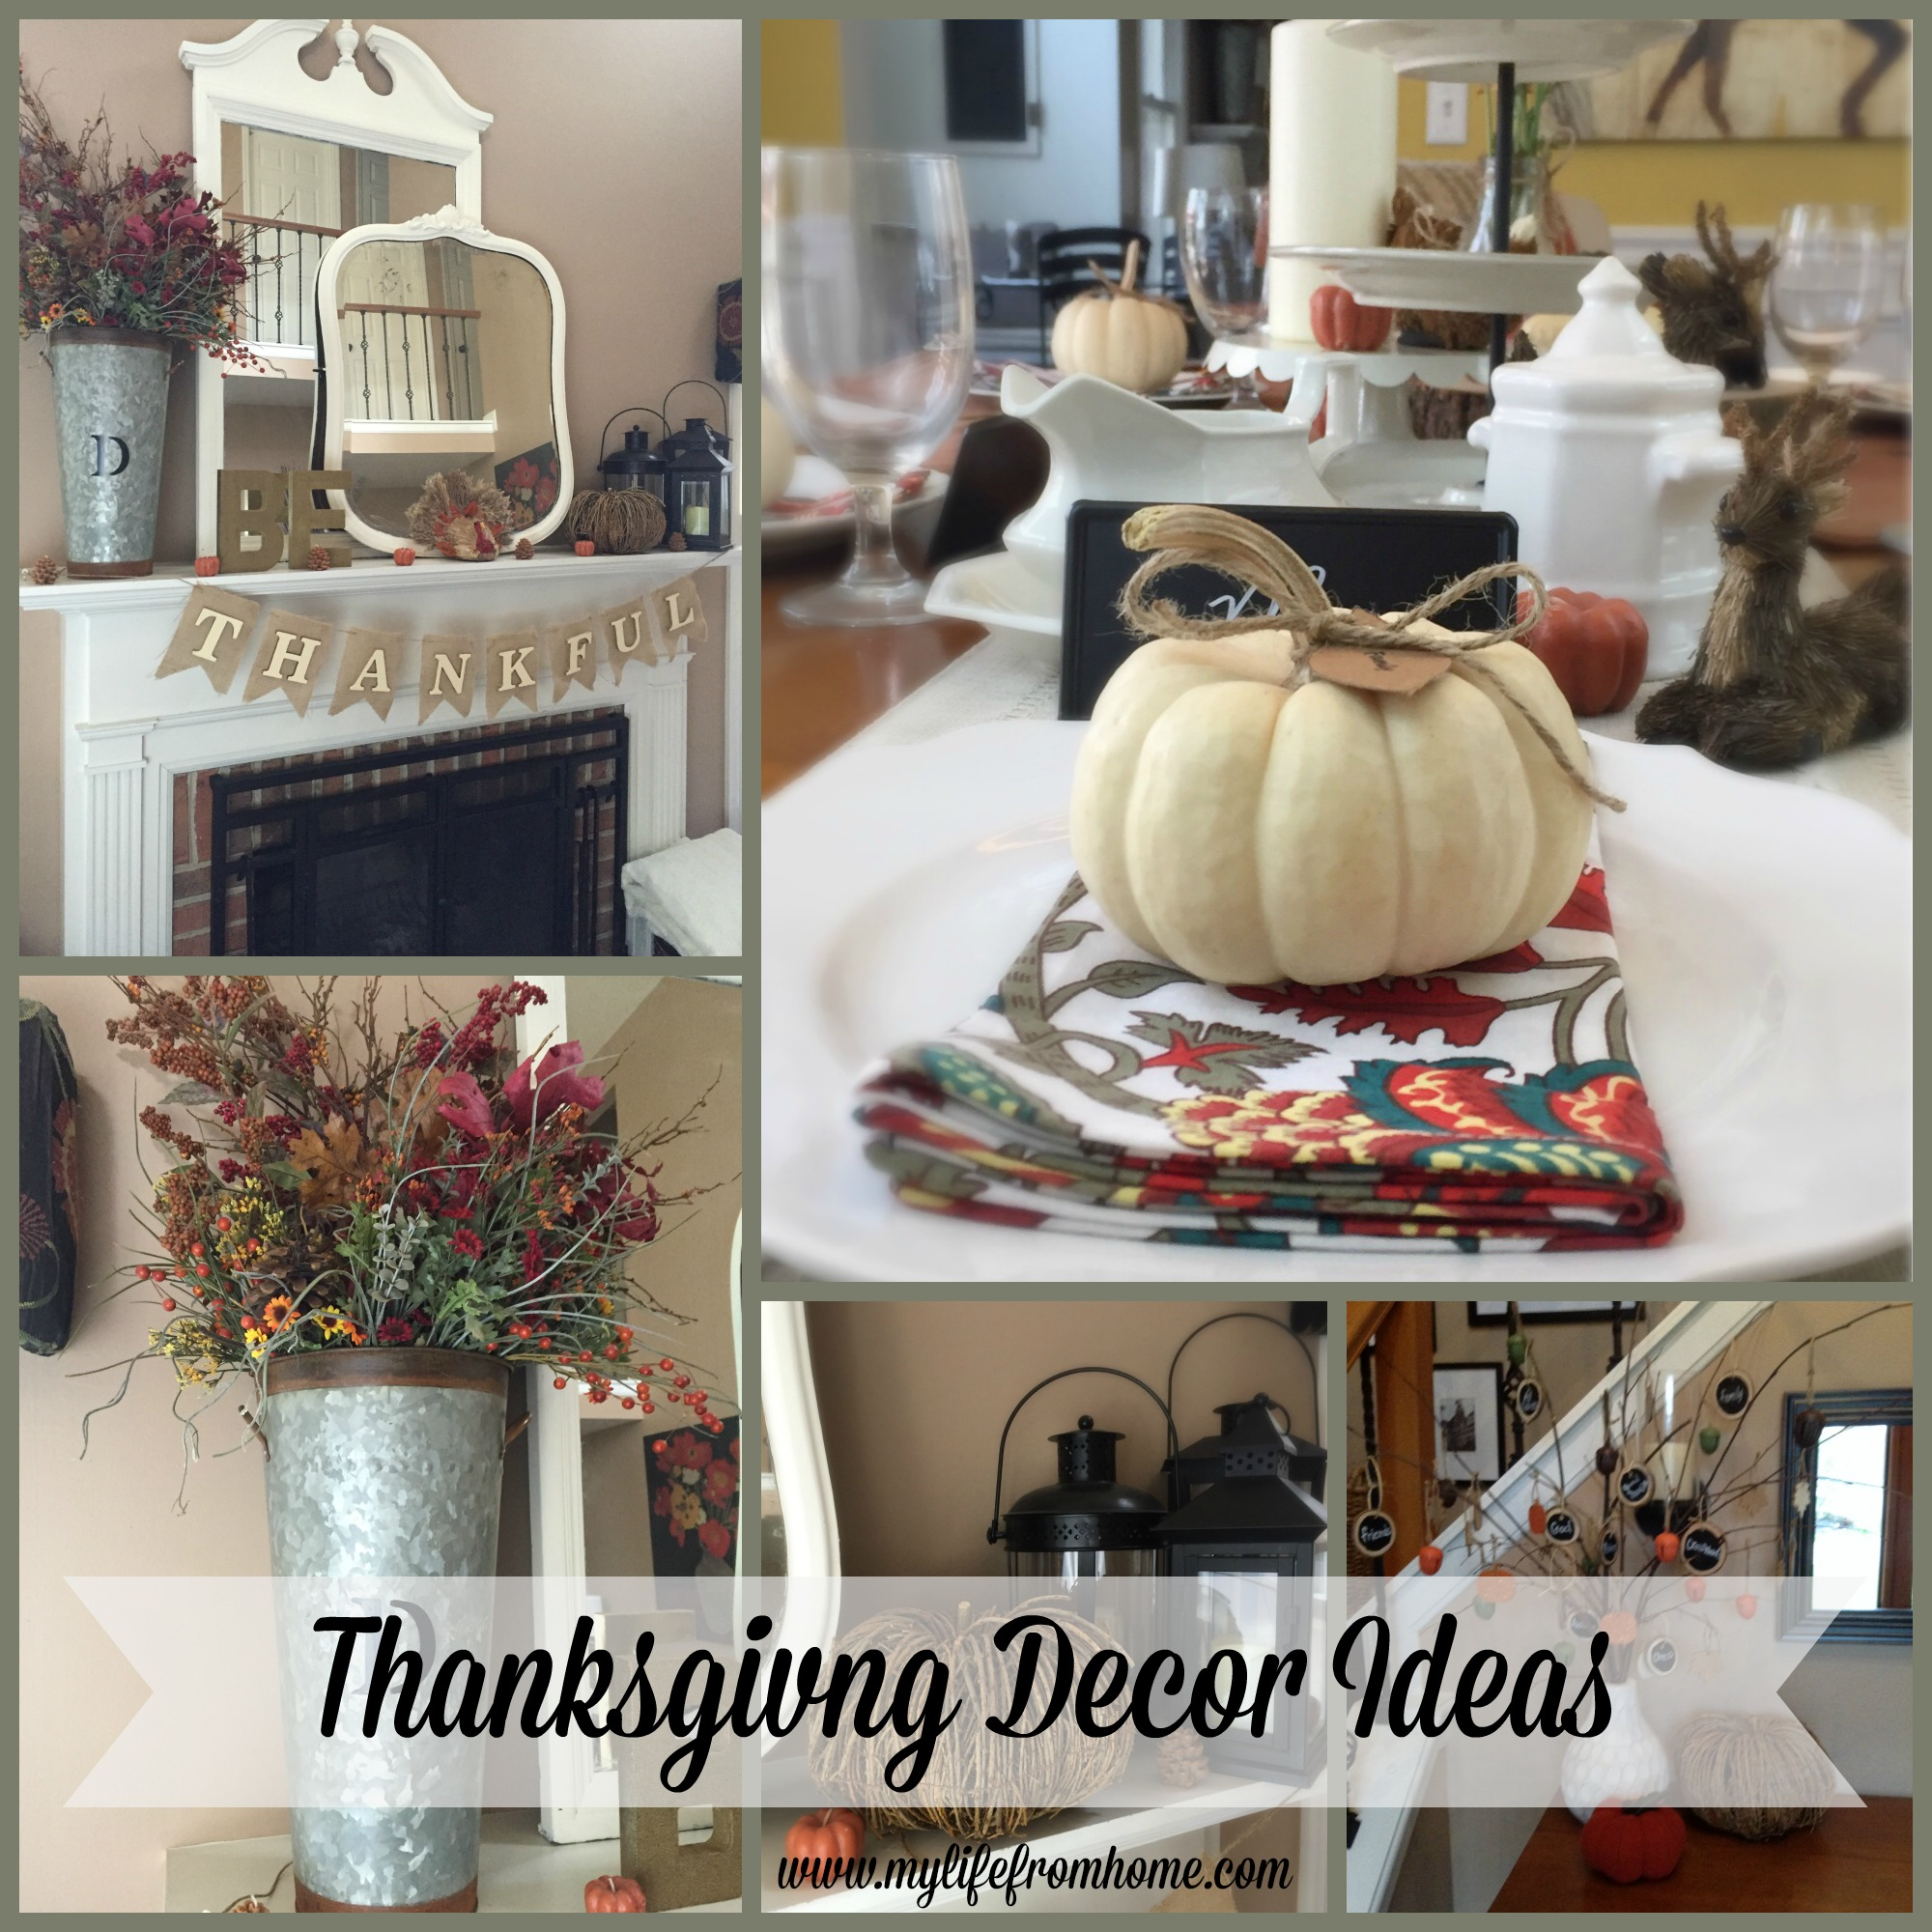 Thanksgiving Decor Ideas by www.mylifefromhome.com